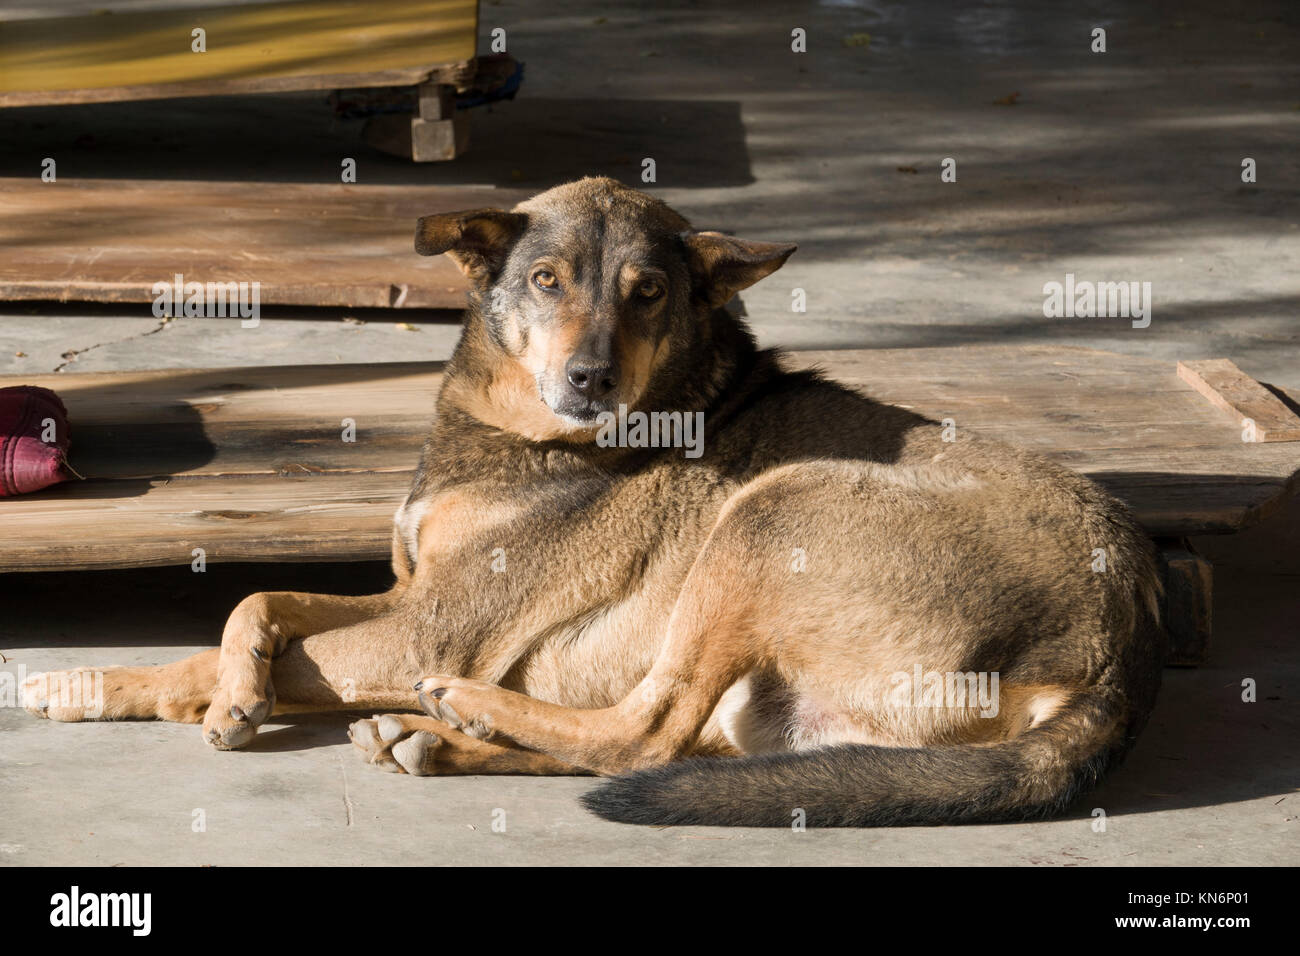 Well fed and healthy looking stray dog resting at temple in Mcleod Ganj, India Stock Photo